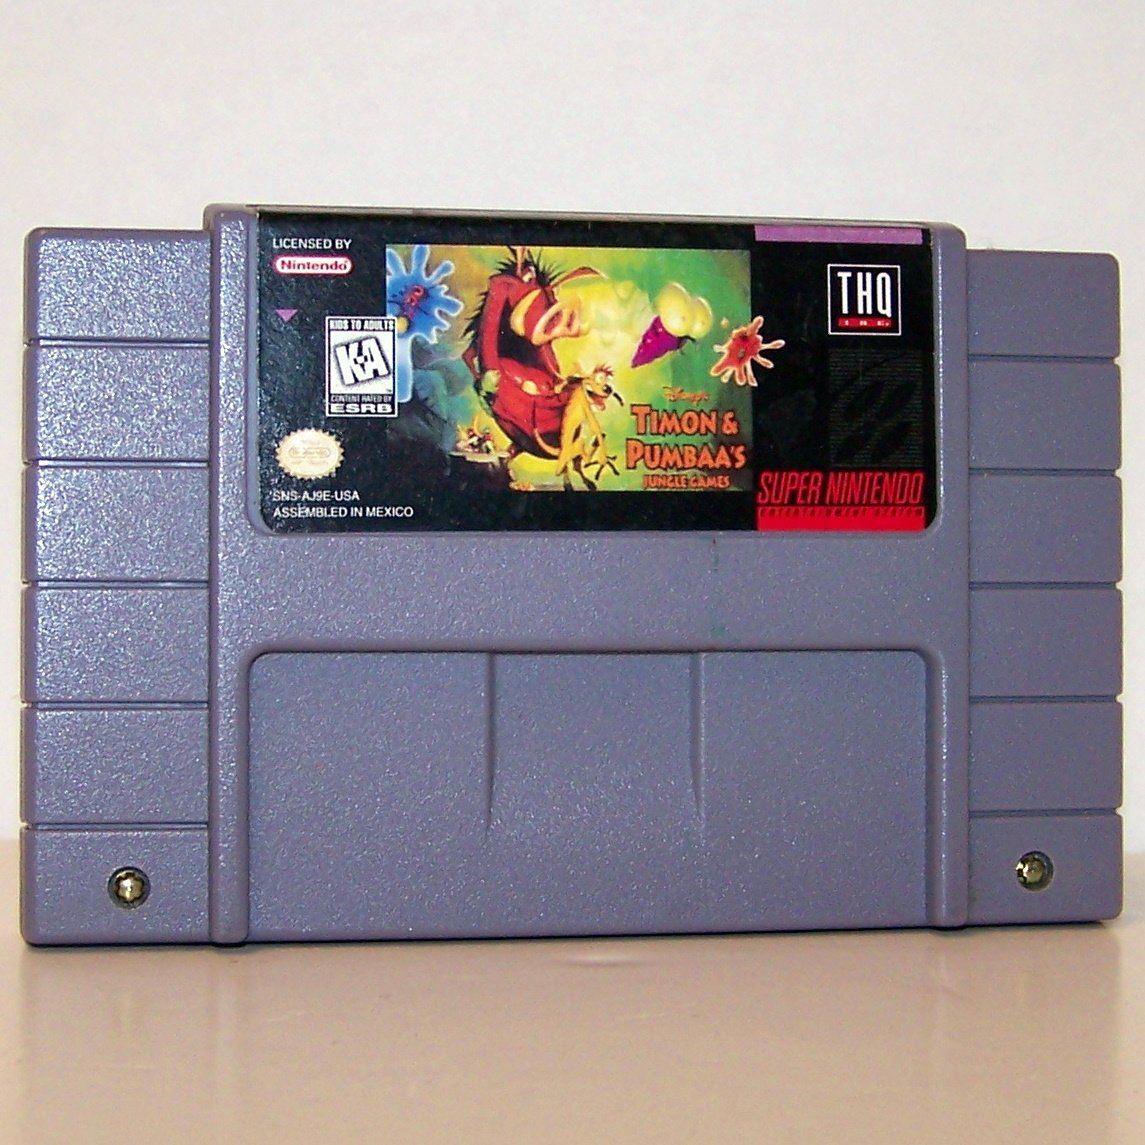 Timon & Pumbaa's Jungle Games  Super Nintendo Game Cartridge